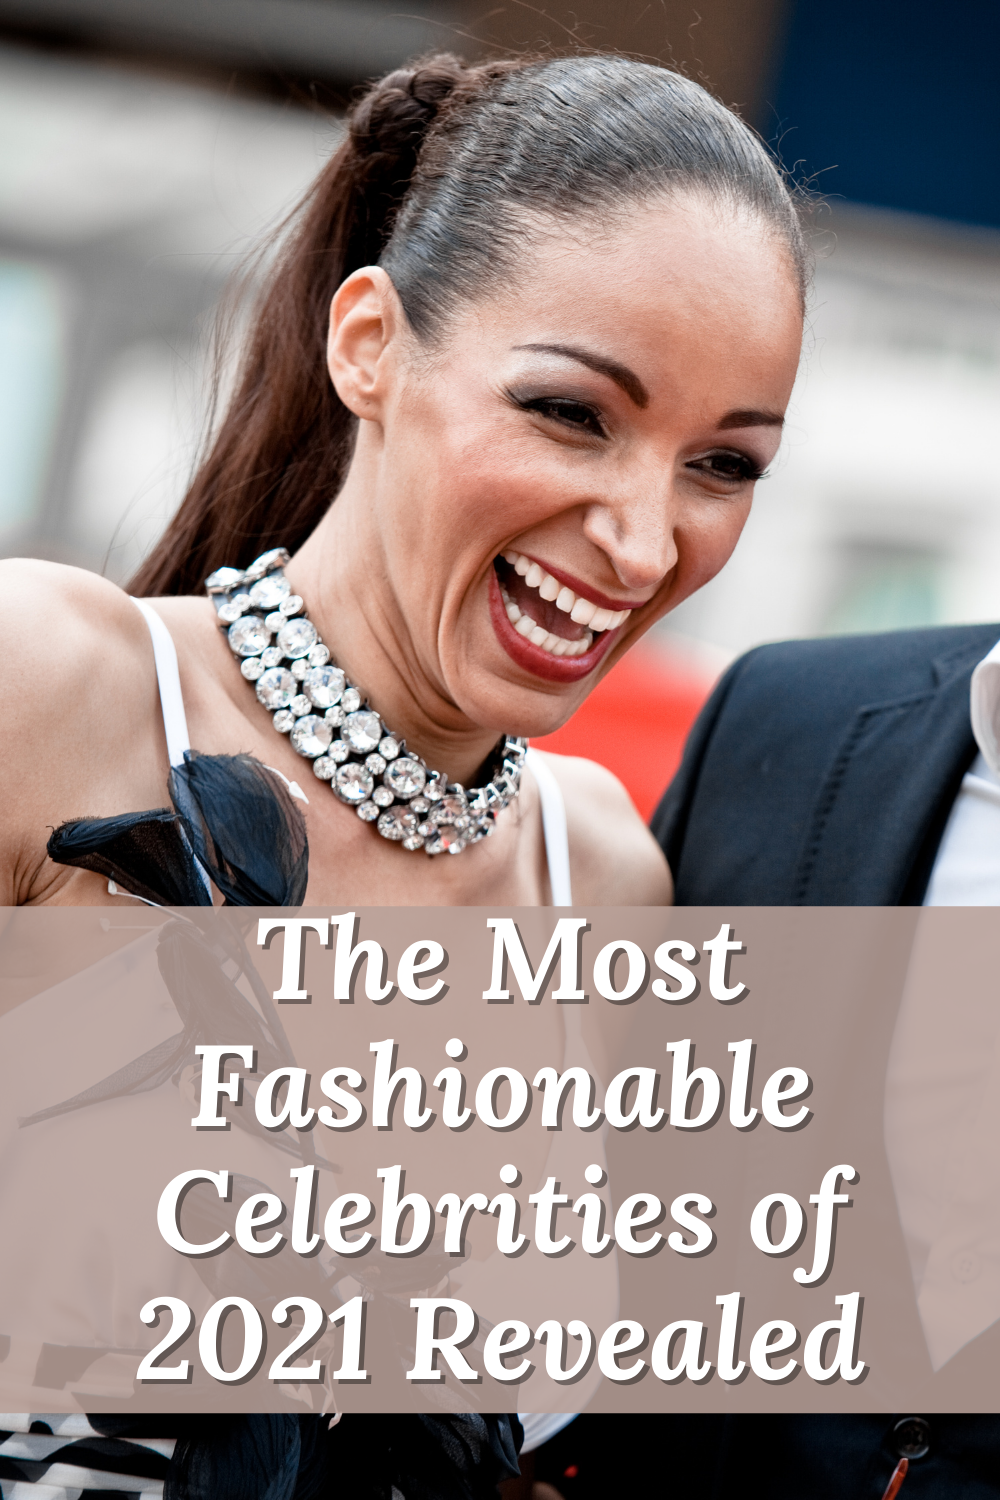 The Most Fashionable Celebrities of 2021 Revealed